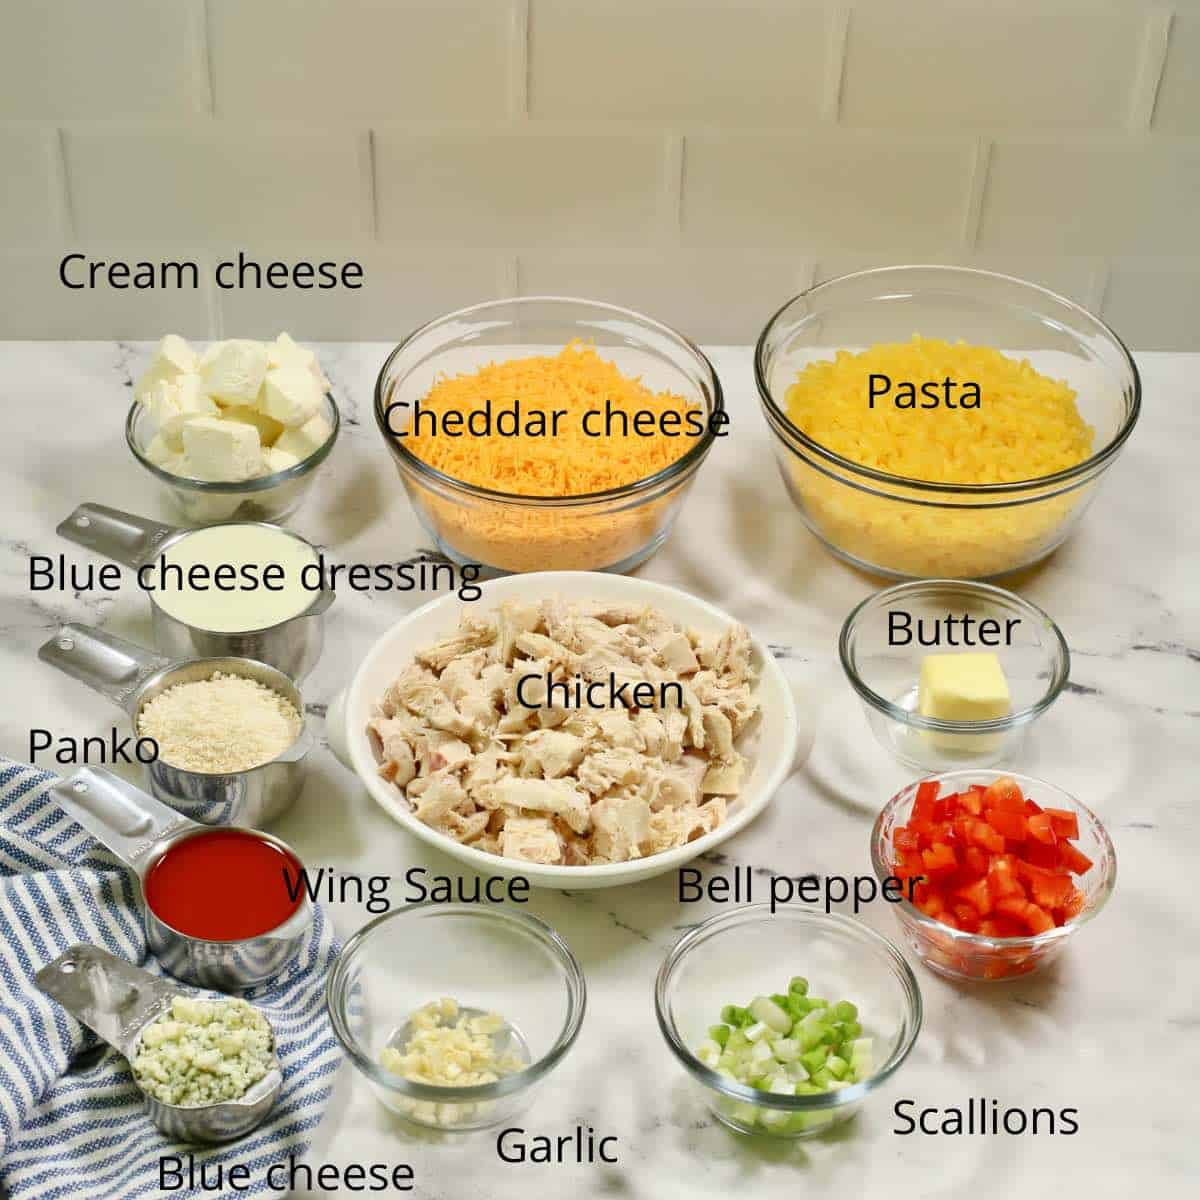 A large bowl of shredded chicken, pasta, cheese and other ingredients to make a chicken and pasta casserole.